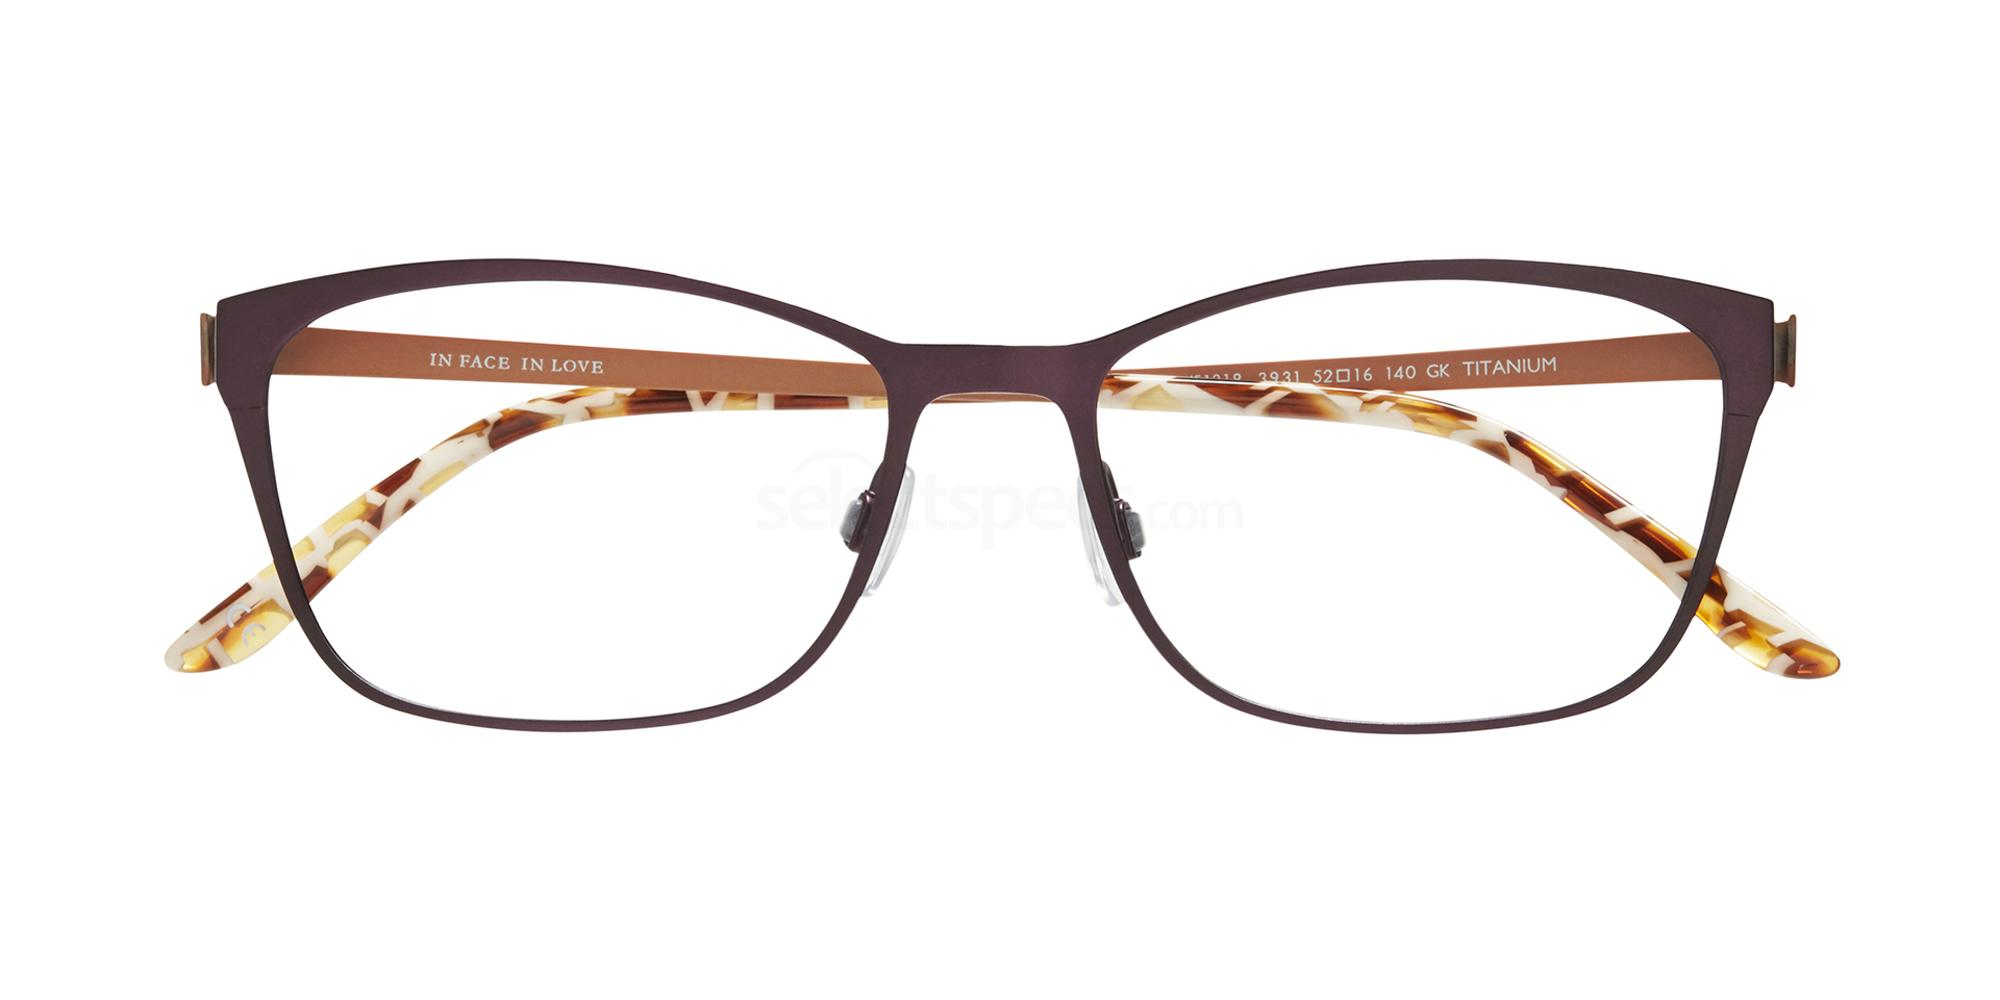 3931 IF1318 Glasses, Inface in Love